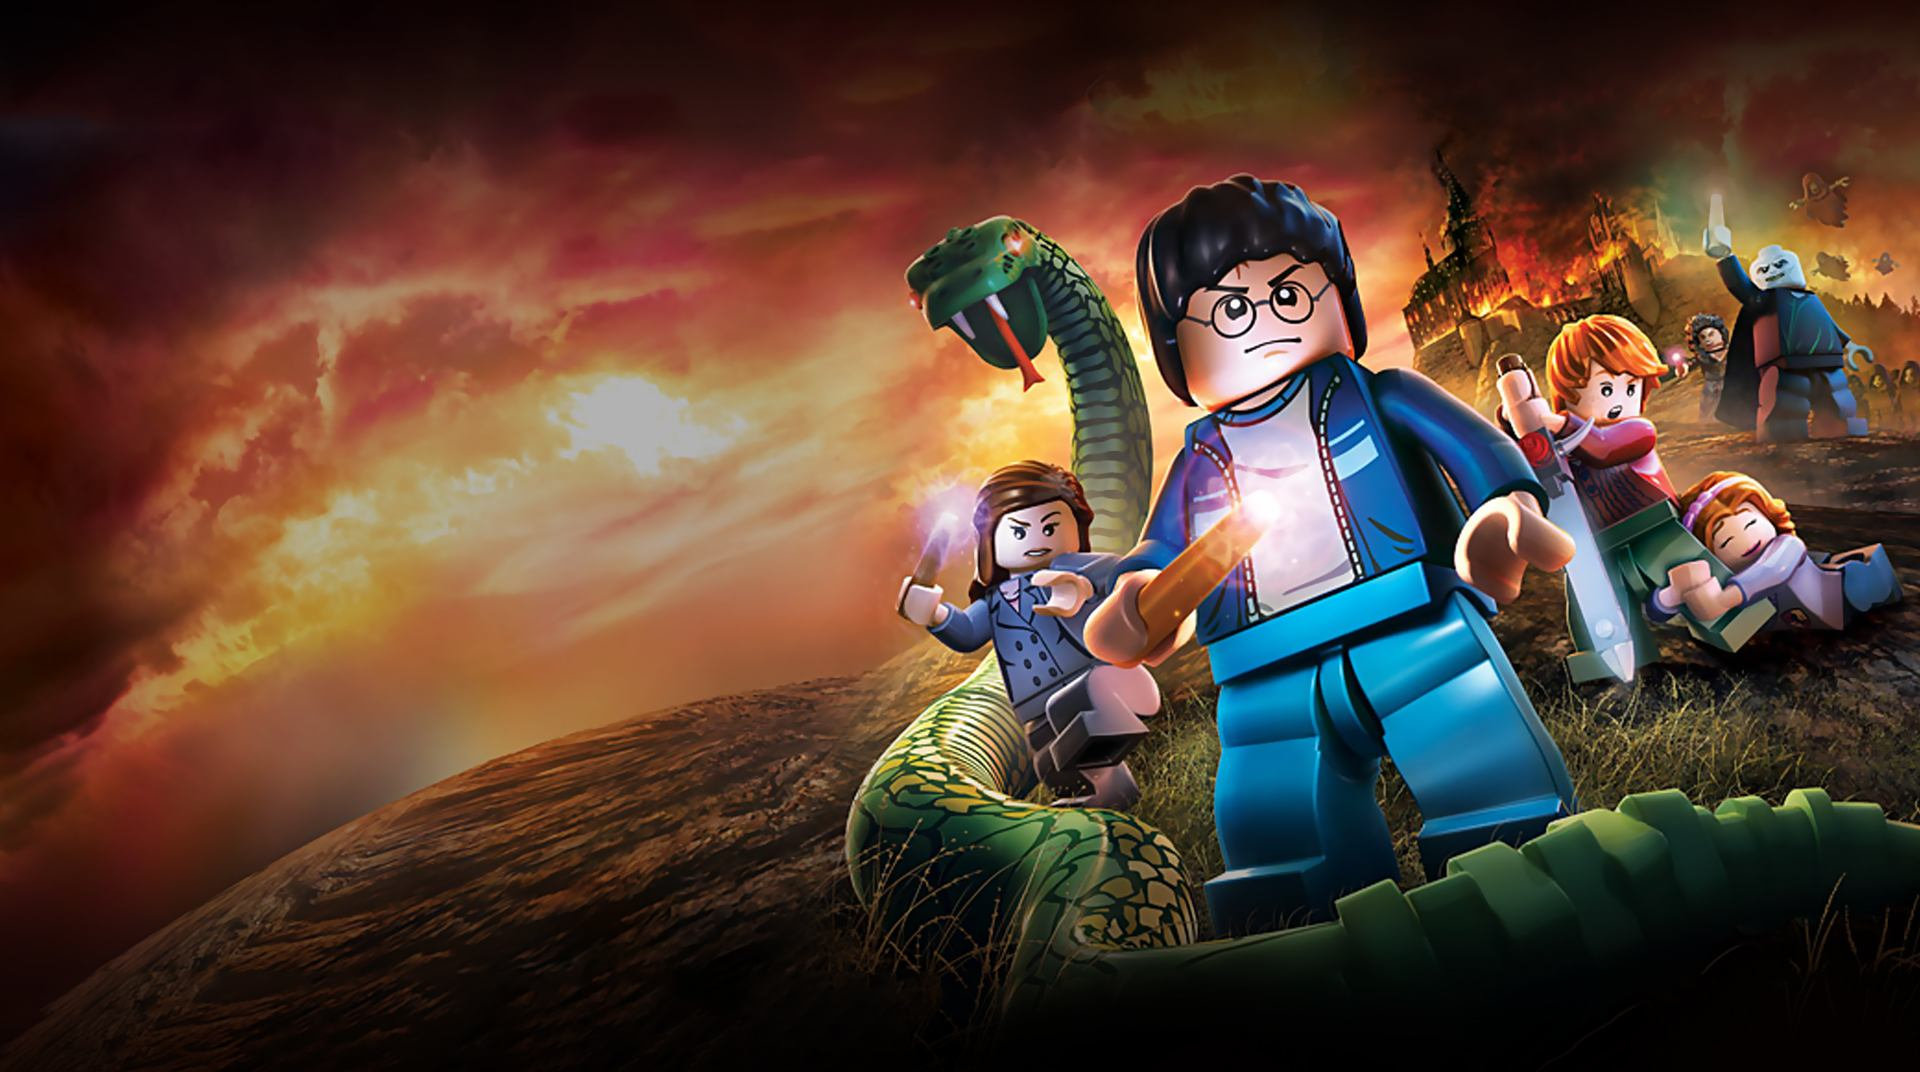 lego harry potter wallpapers  wallpaper cave